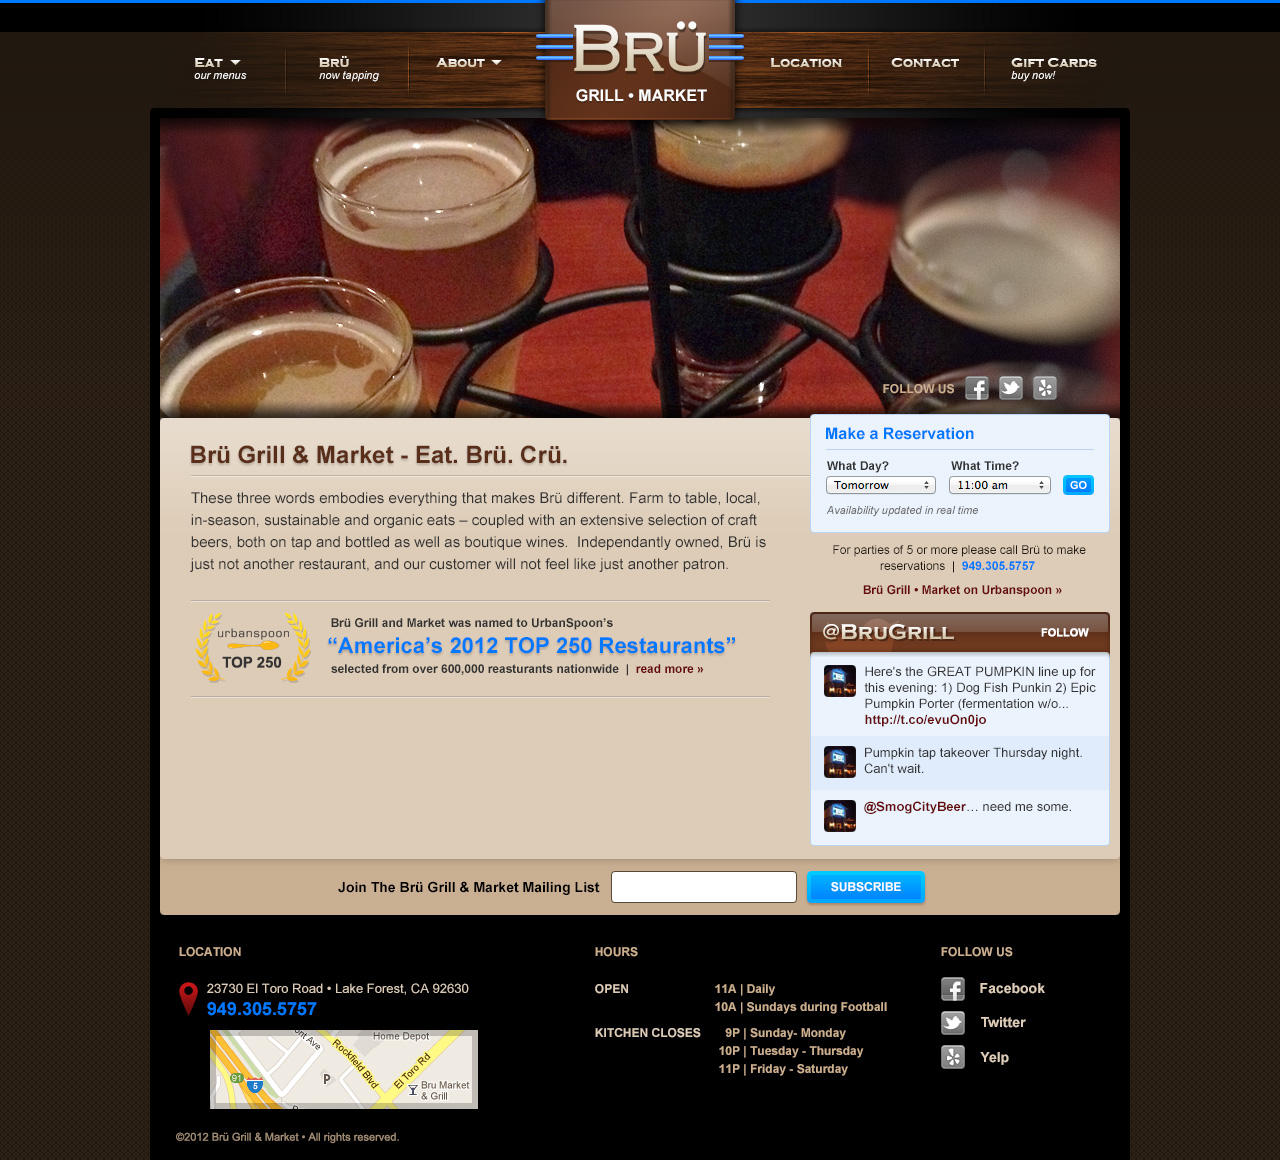 Bru Grill & Market Website Design